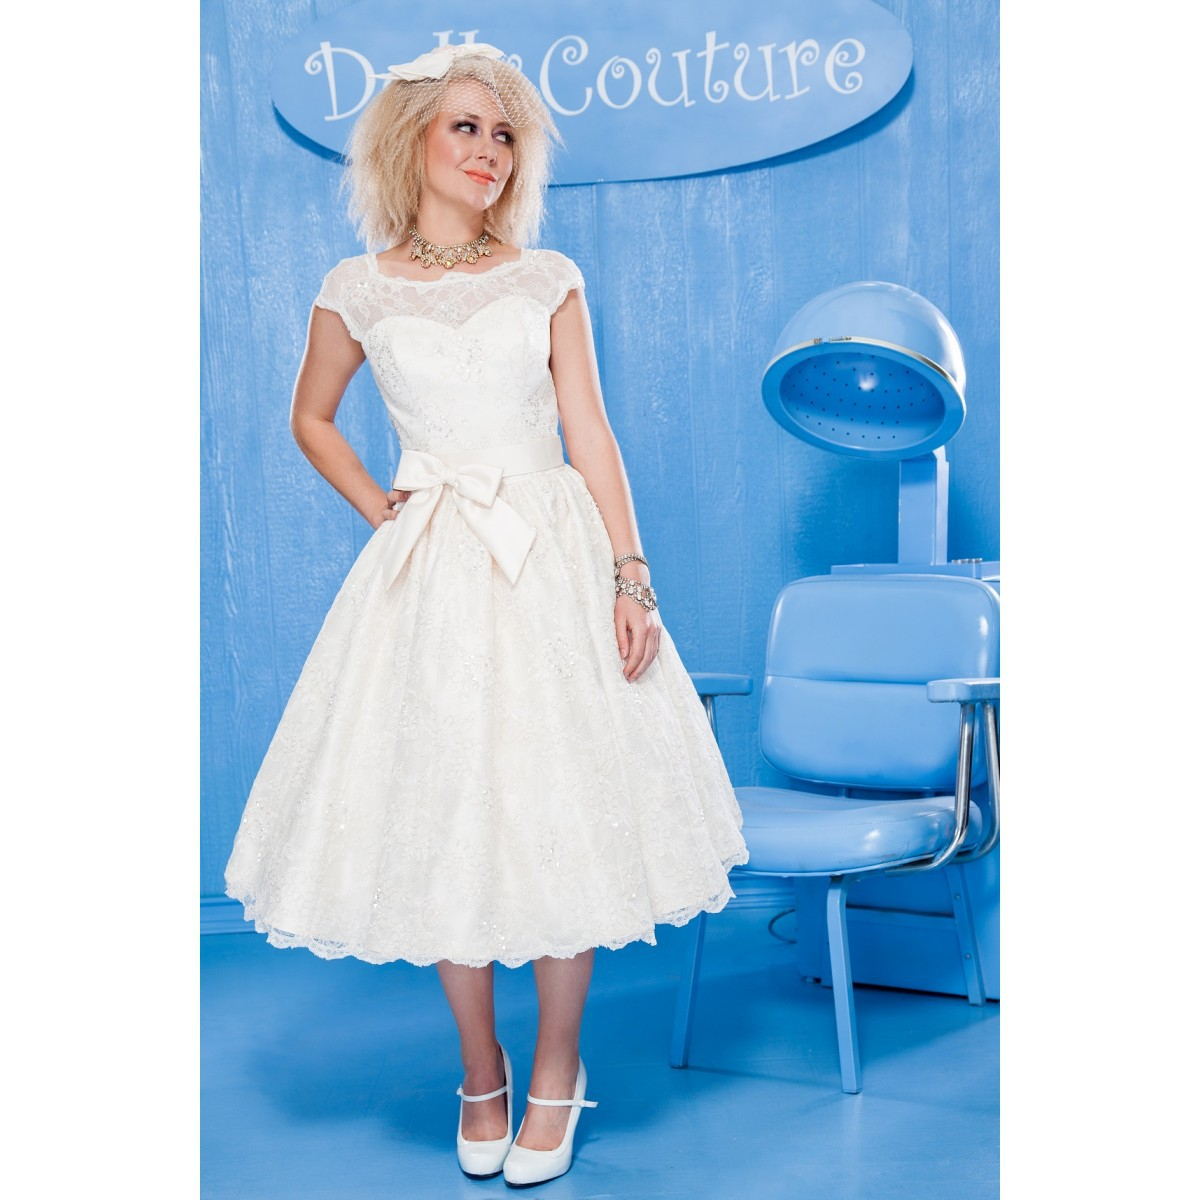 Dolly couture wedding